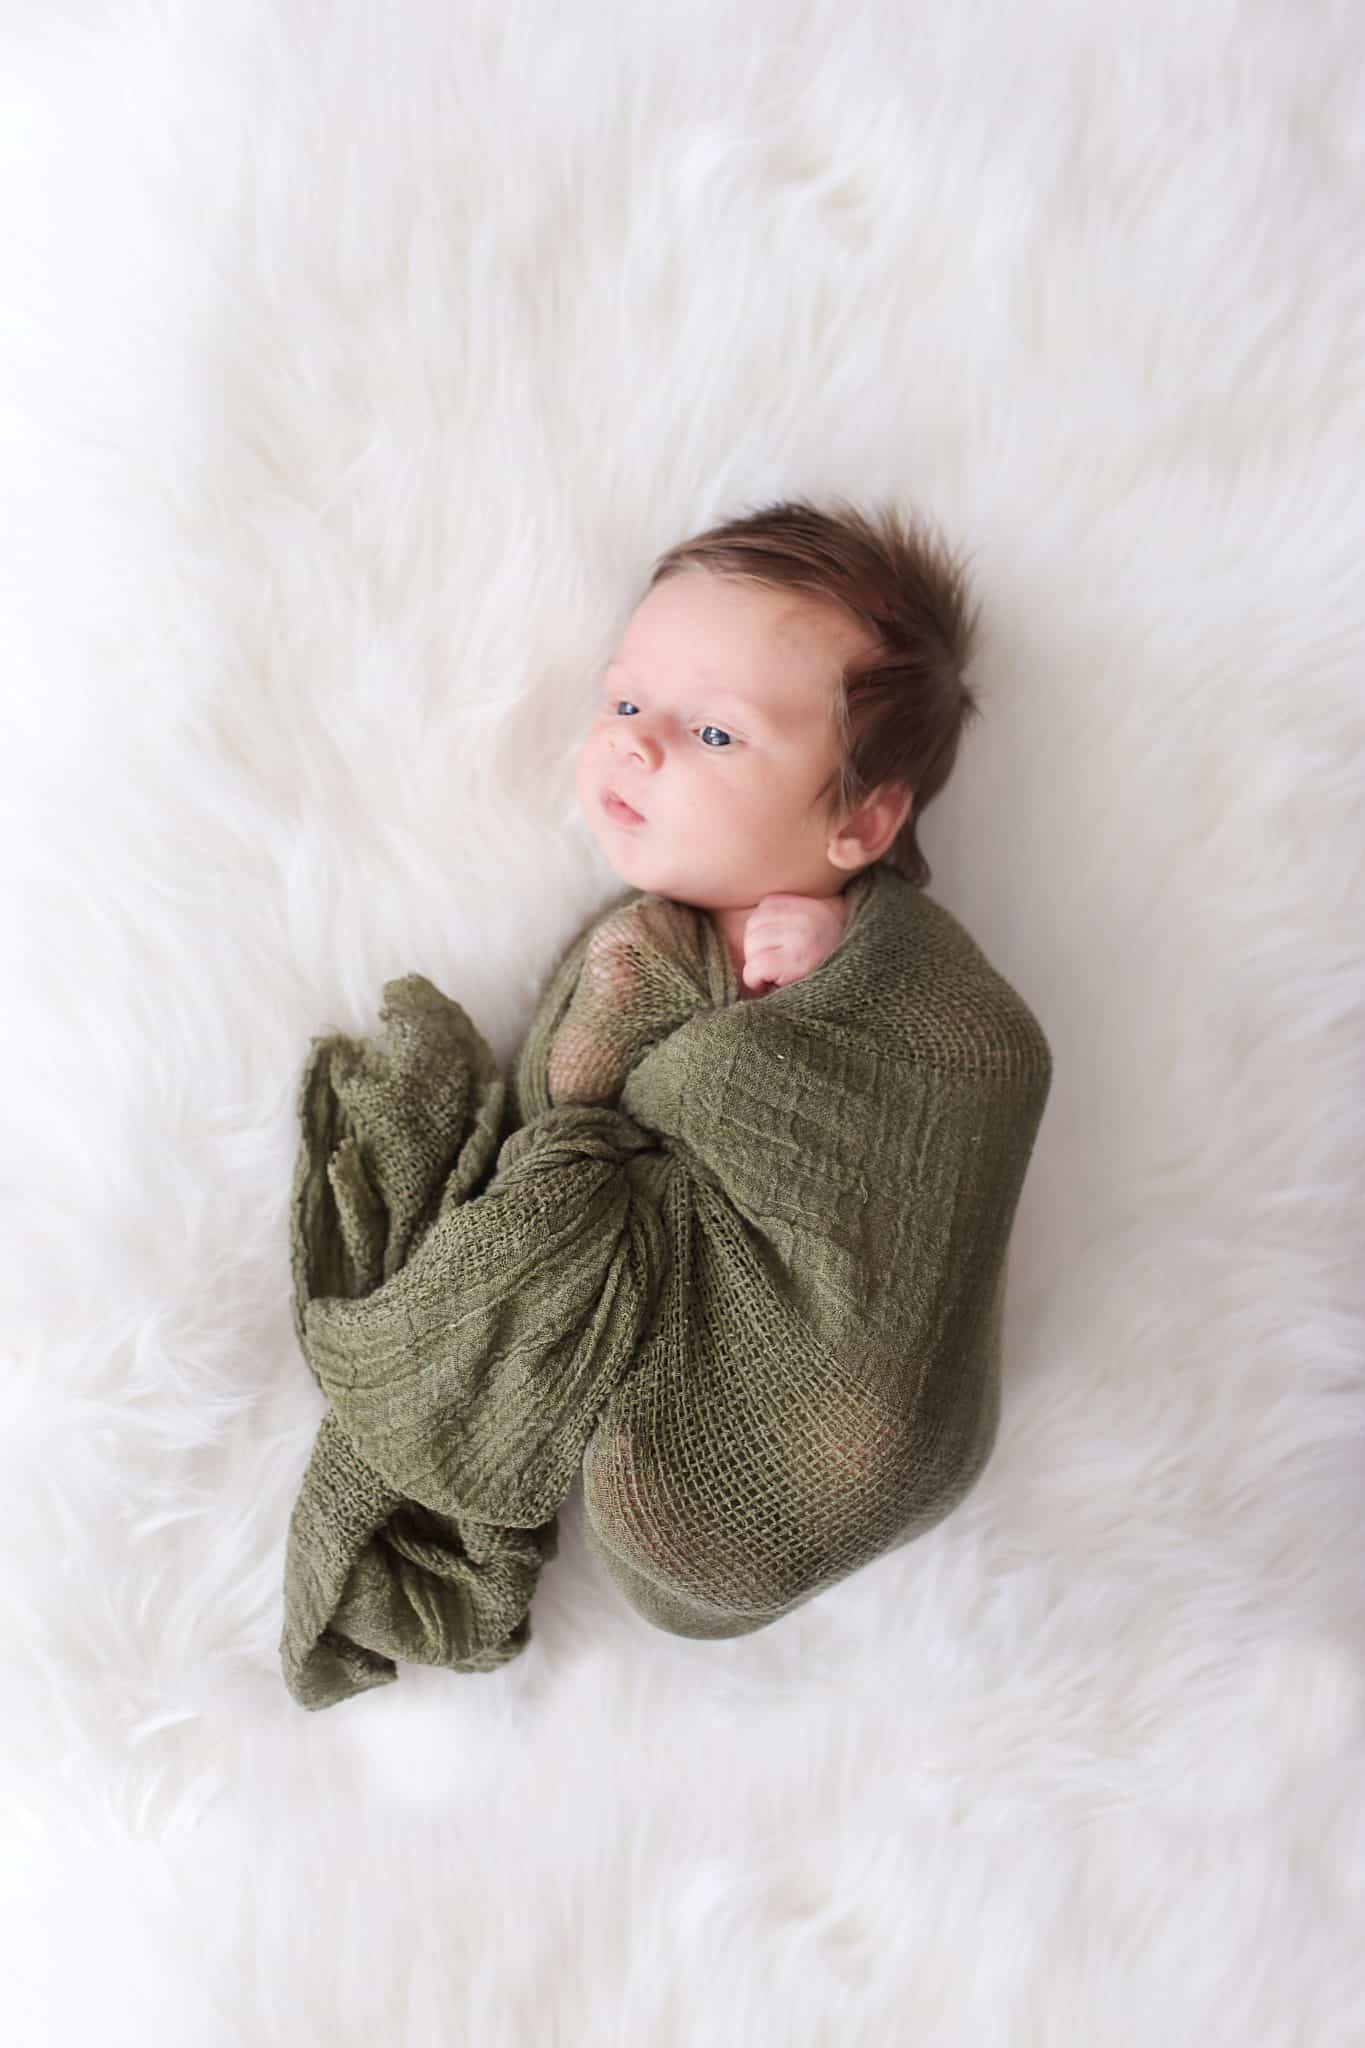 Newborn photo session. Newborn, olive green wrap, white fur blanket, tons of hair, eyes open